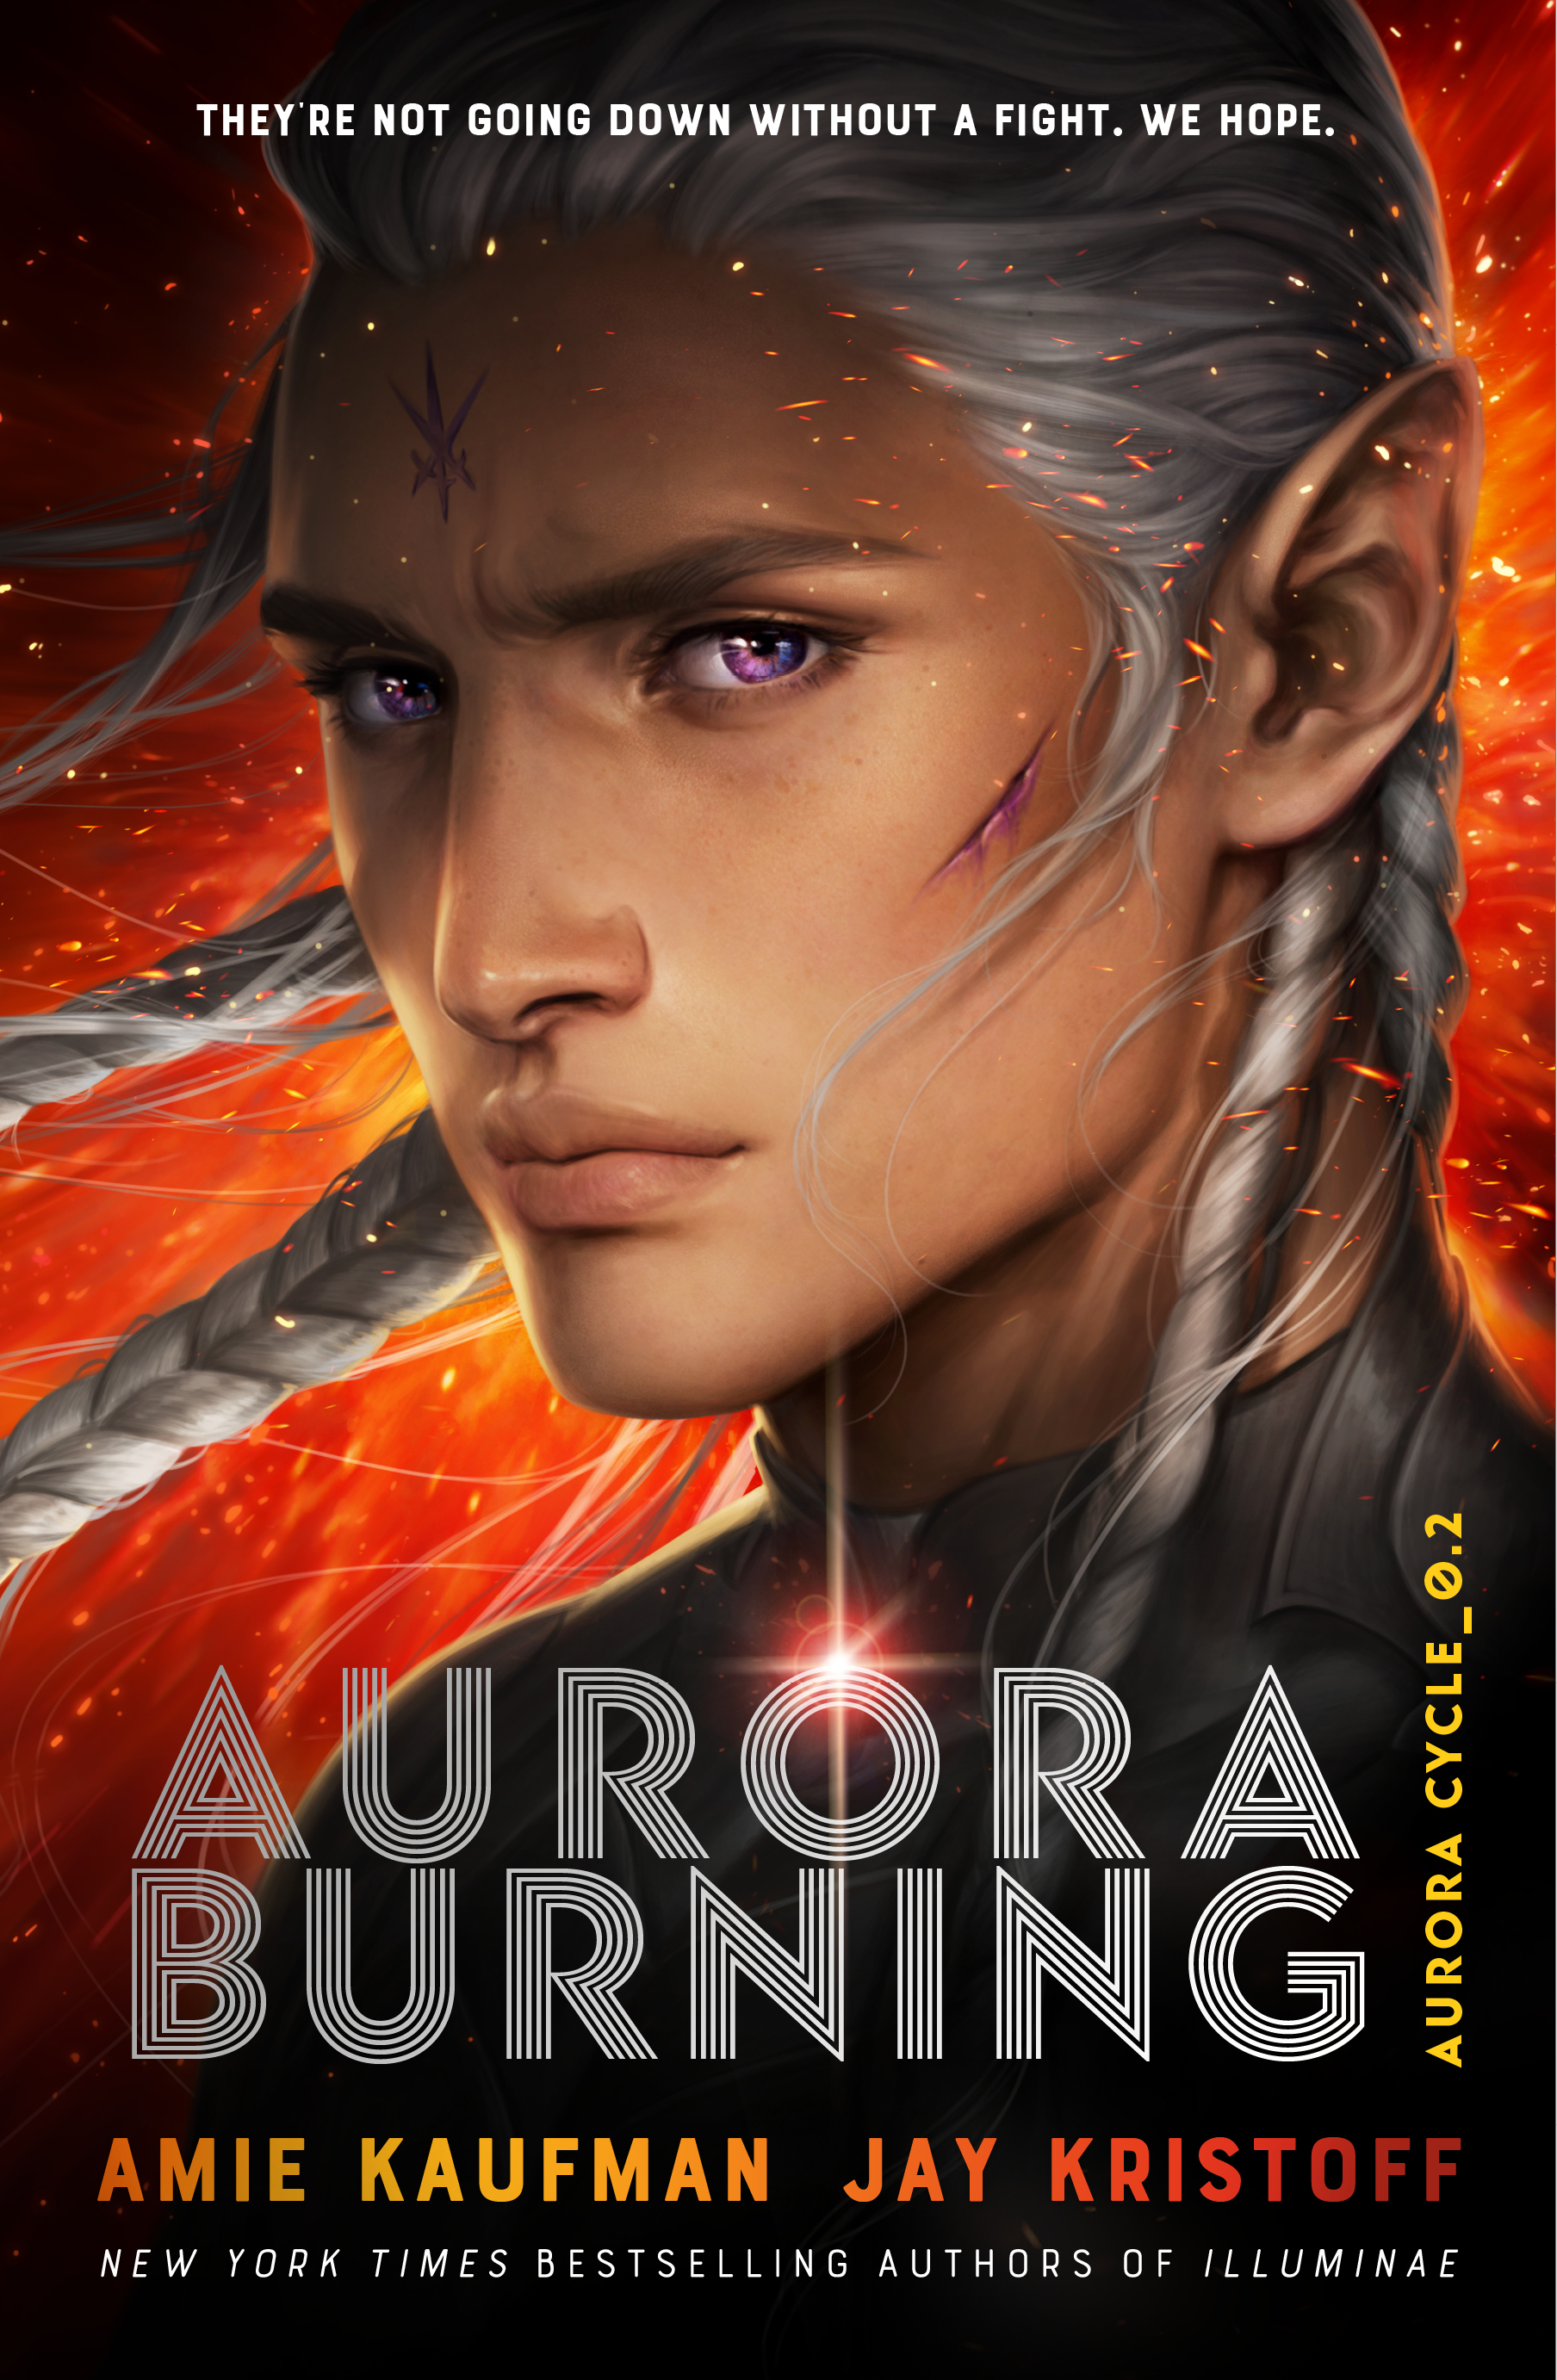 Aurora Burning (The Aurora Cycle, #2) by Amie Kaufman